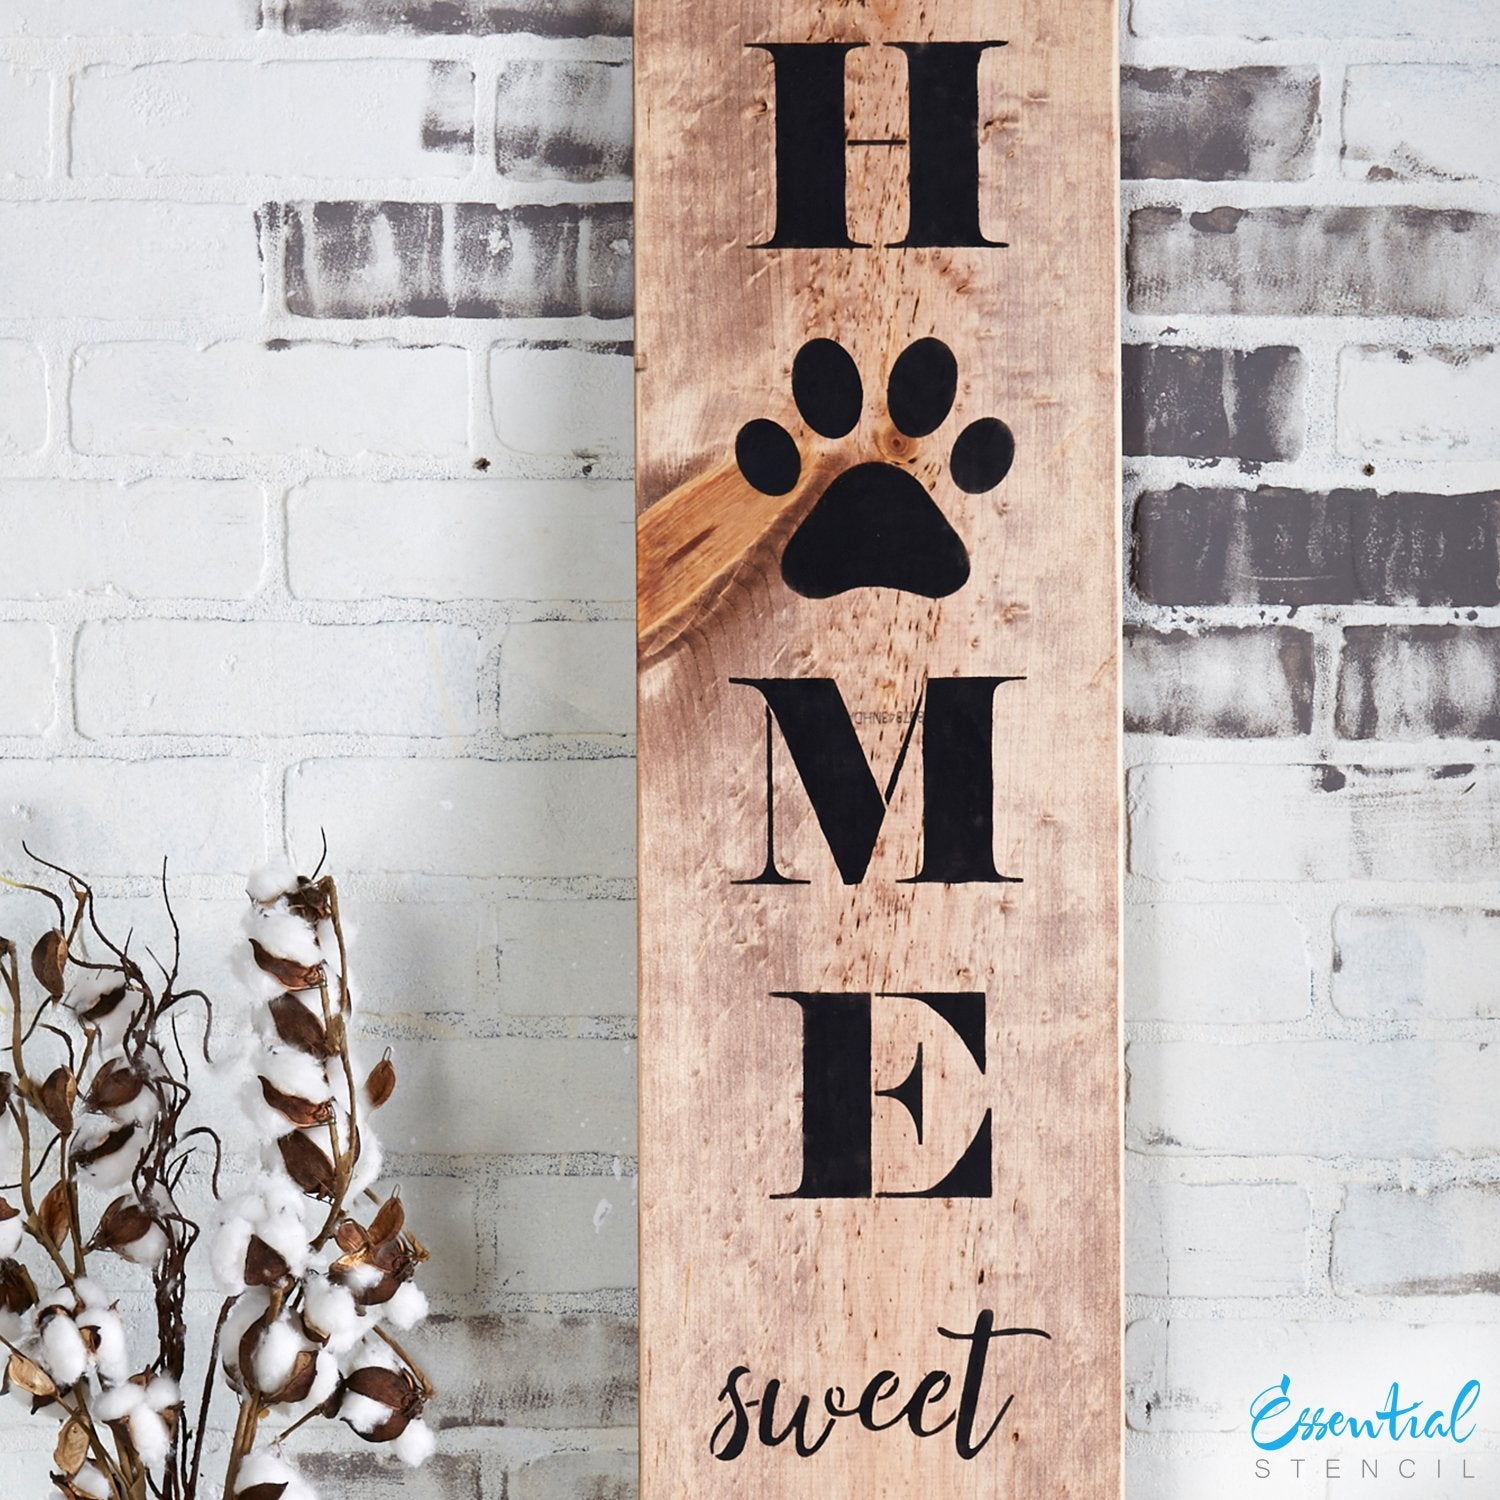 Reusable Vertical Home Sweet Home Sign Stencil for painting 5ft wood porch signs | Bonus Paw print stencil, 5ft Vertical Home Sweet Home front porch leaner sign